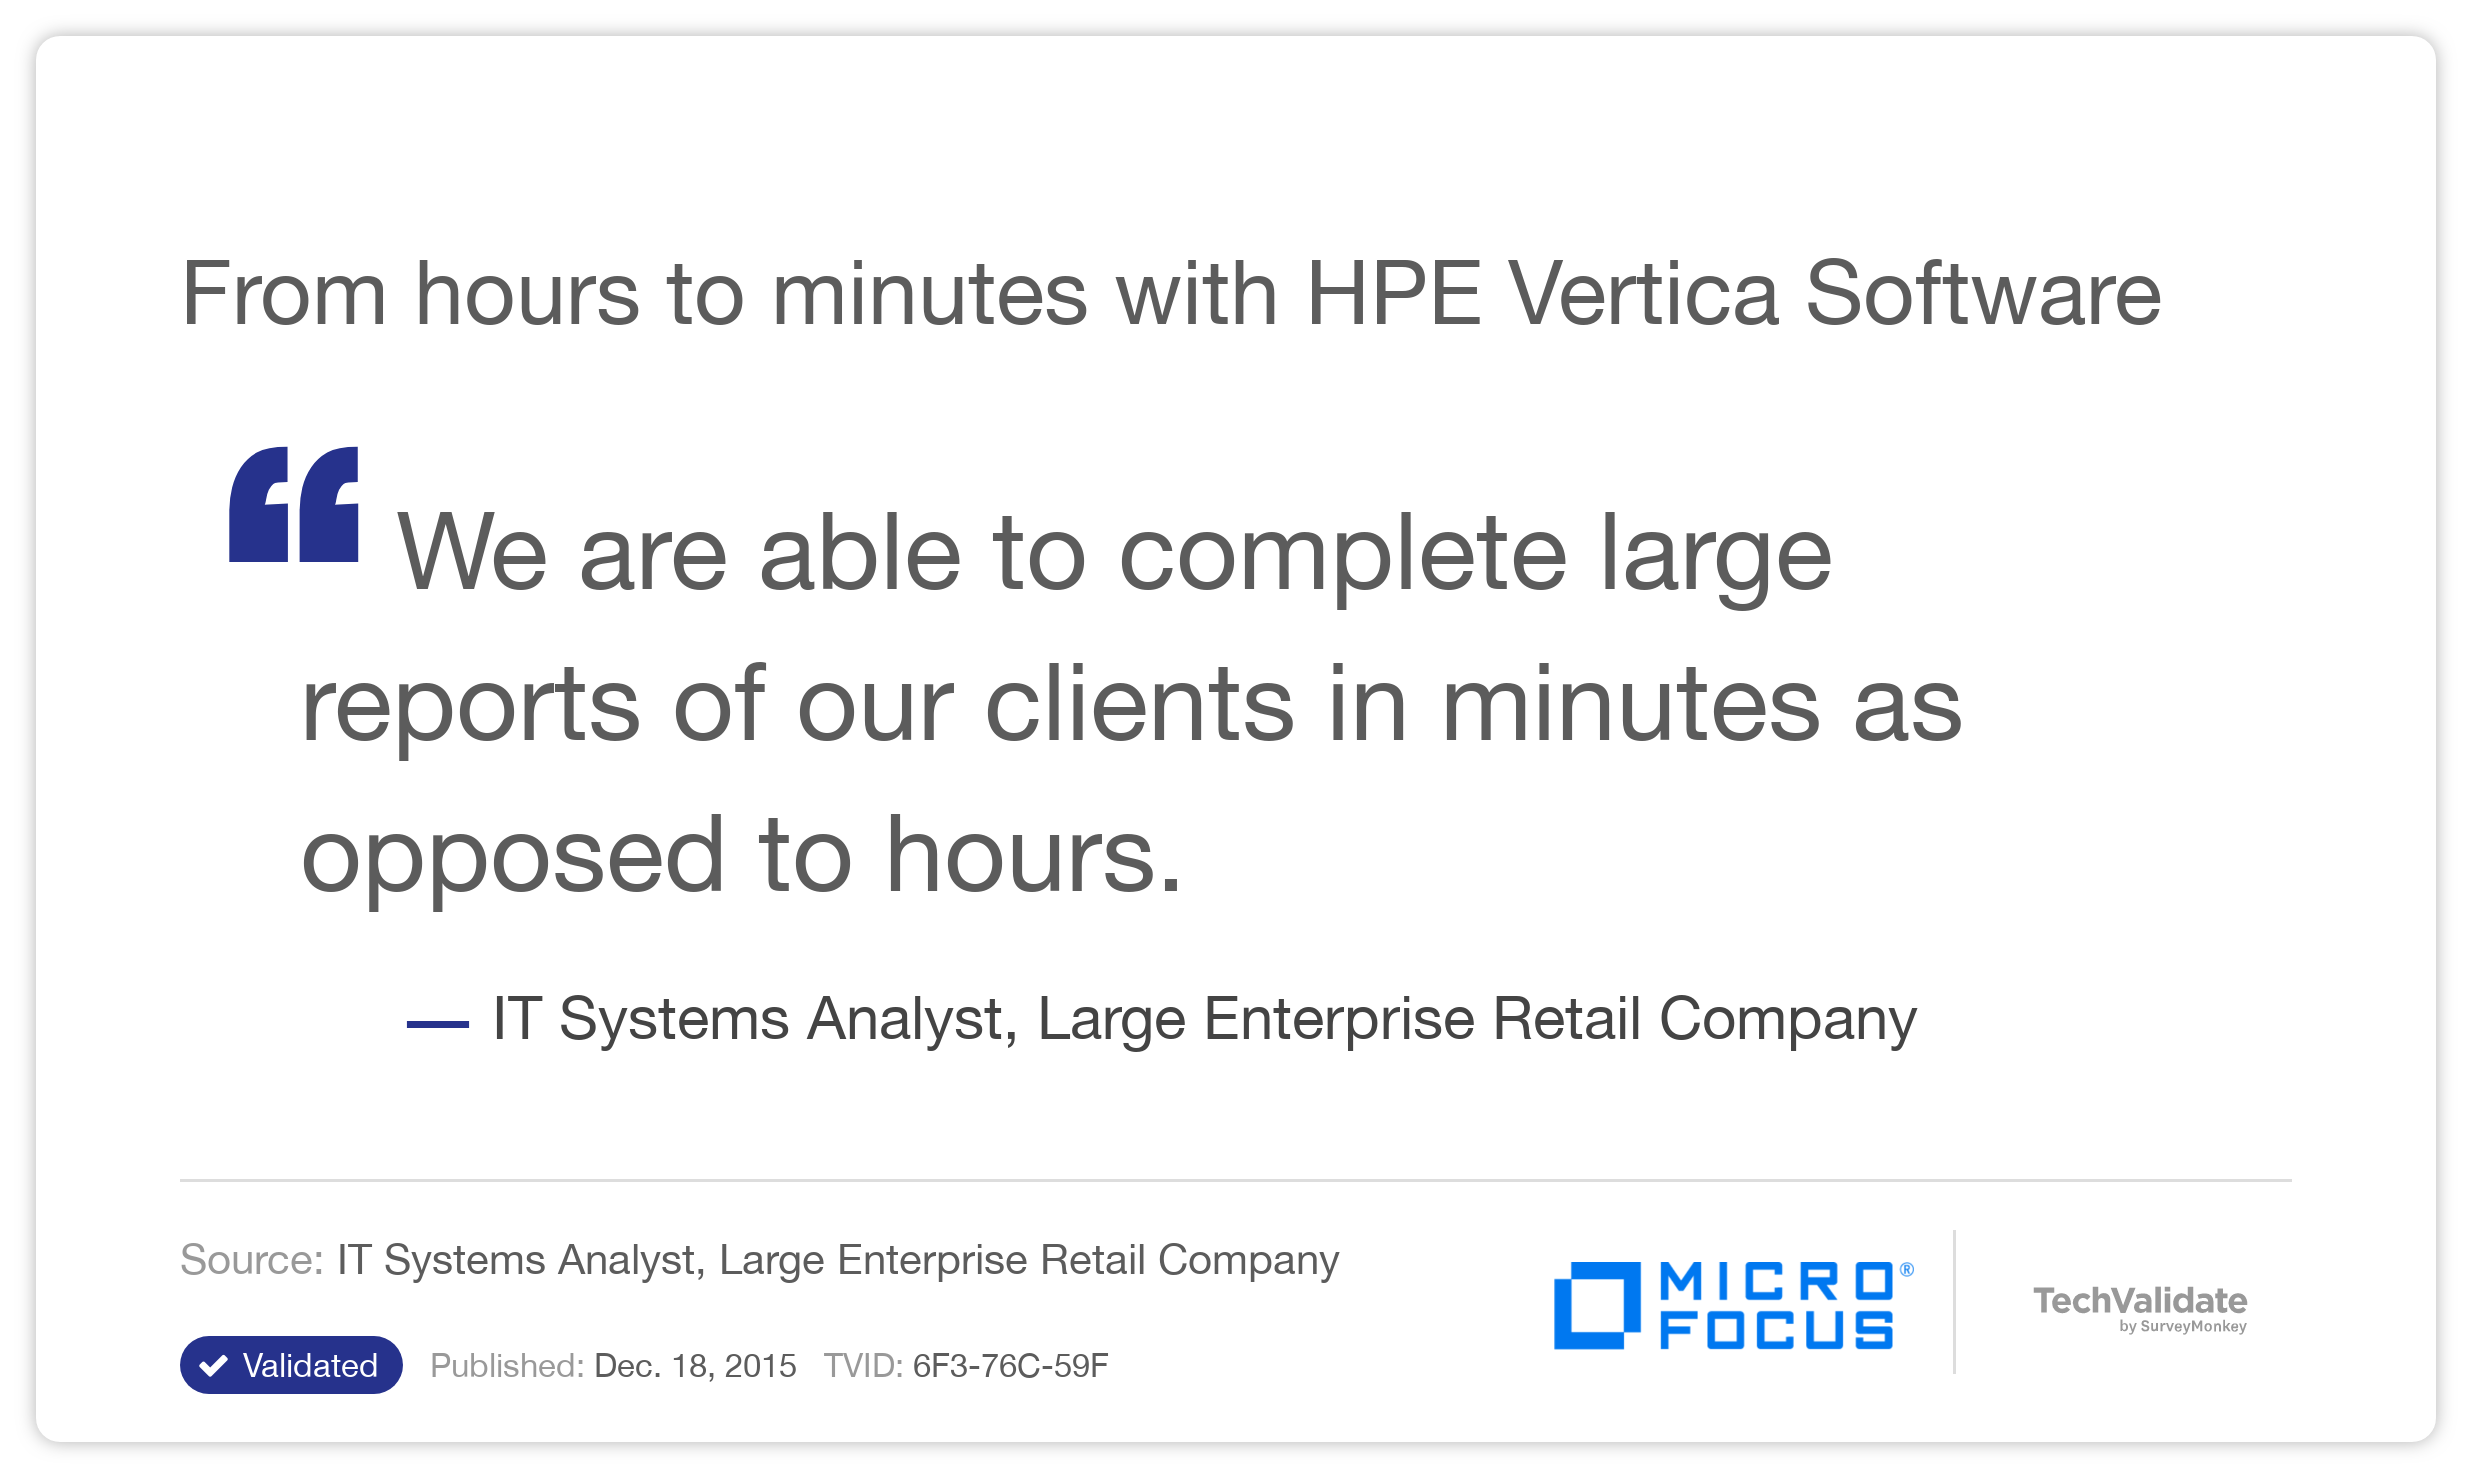 From hours to minutes with HP Vertica Software